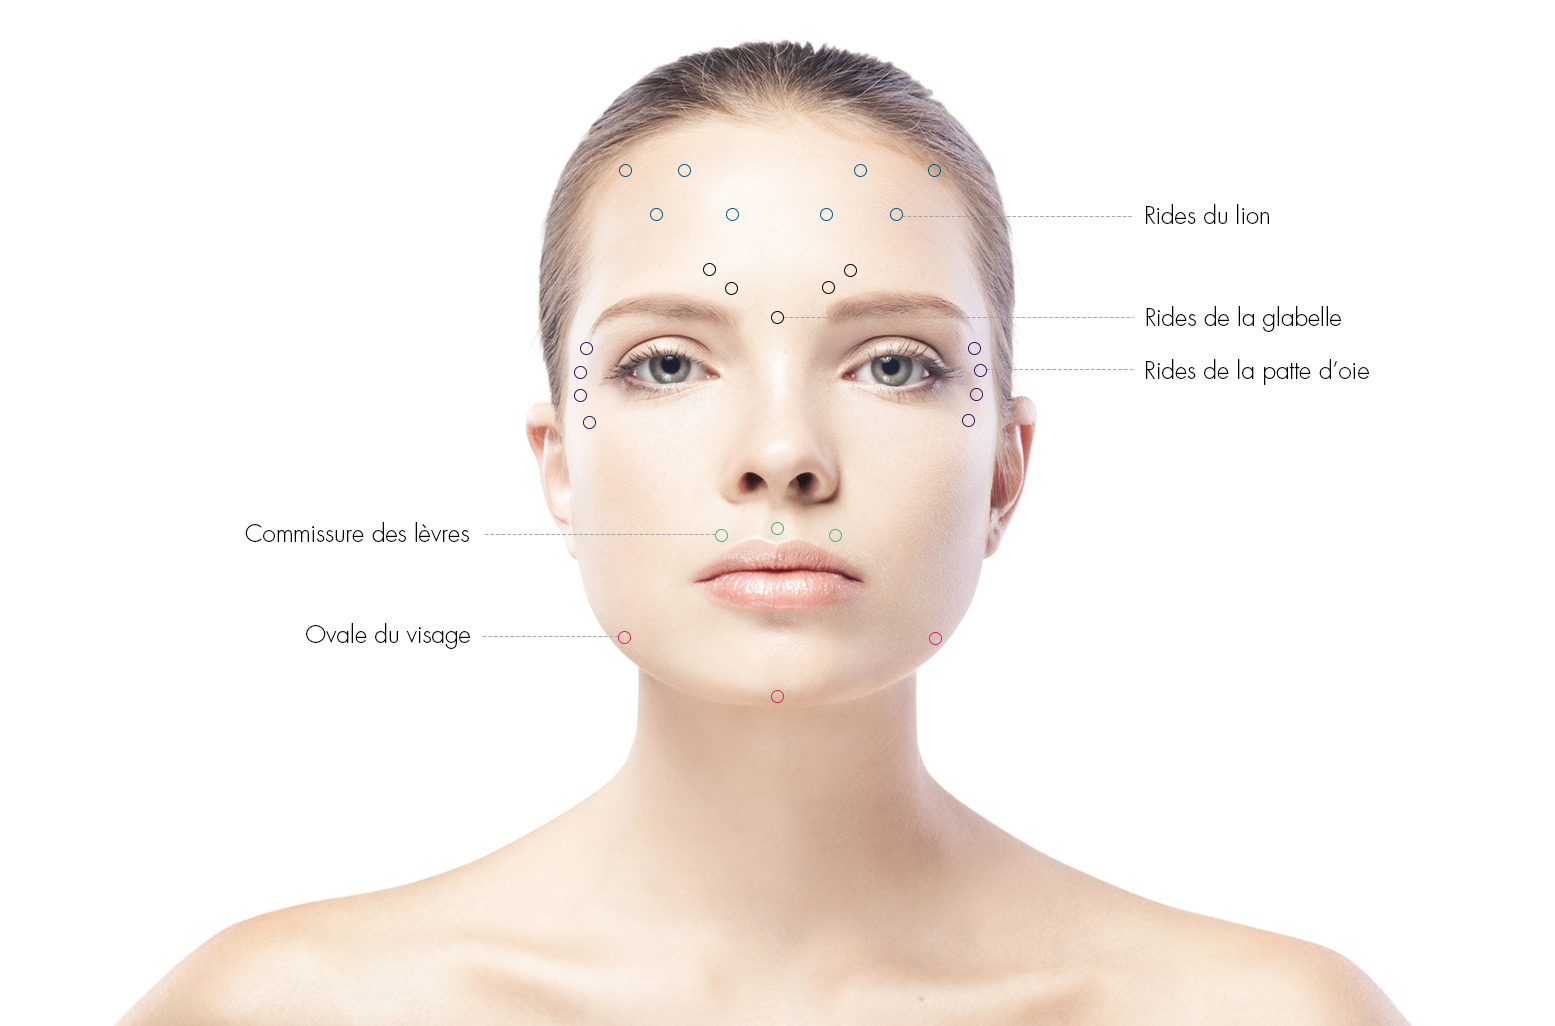 zones-injections-toxine-botulique-docteur-julien-luini-chirurgie-esthetique-antibes